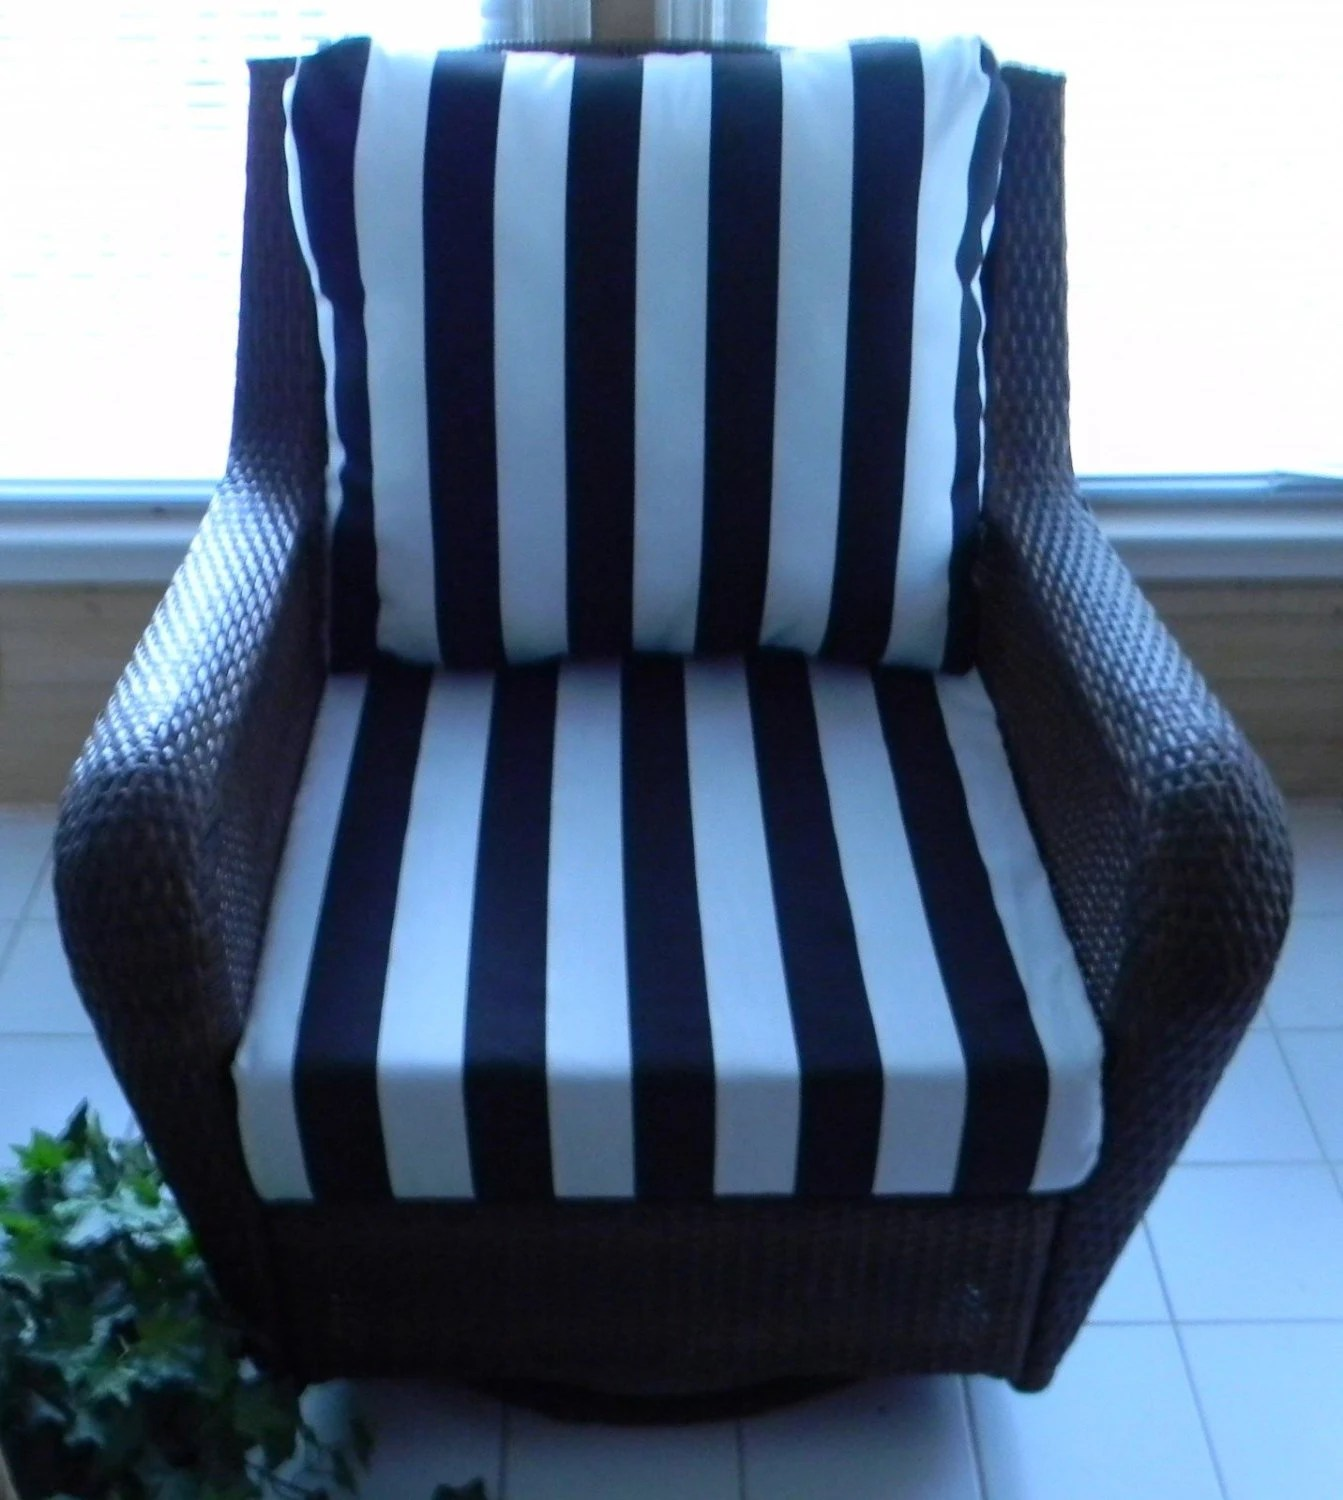 black amp white stripe cushion for outdoor by on Black And White Striped Outdoor Seat Cushions id=89554